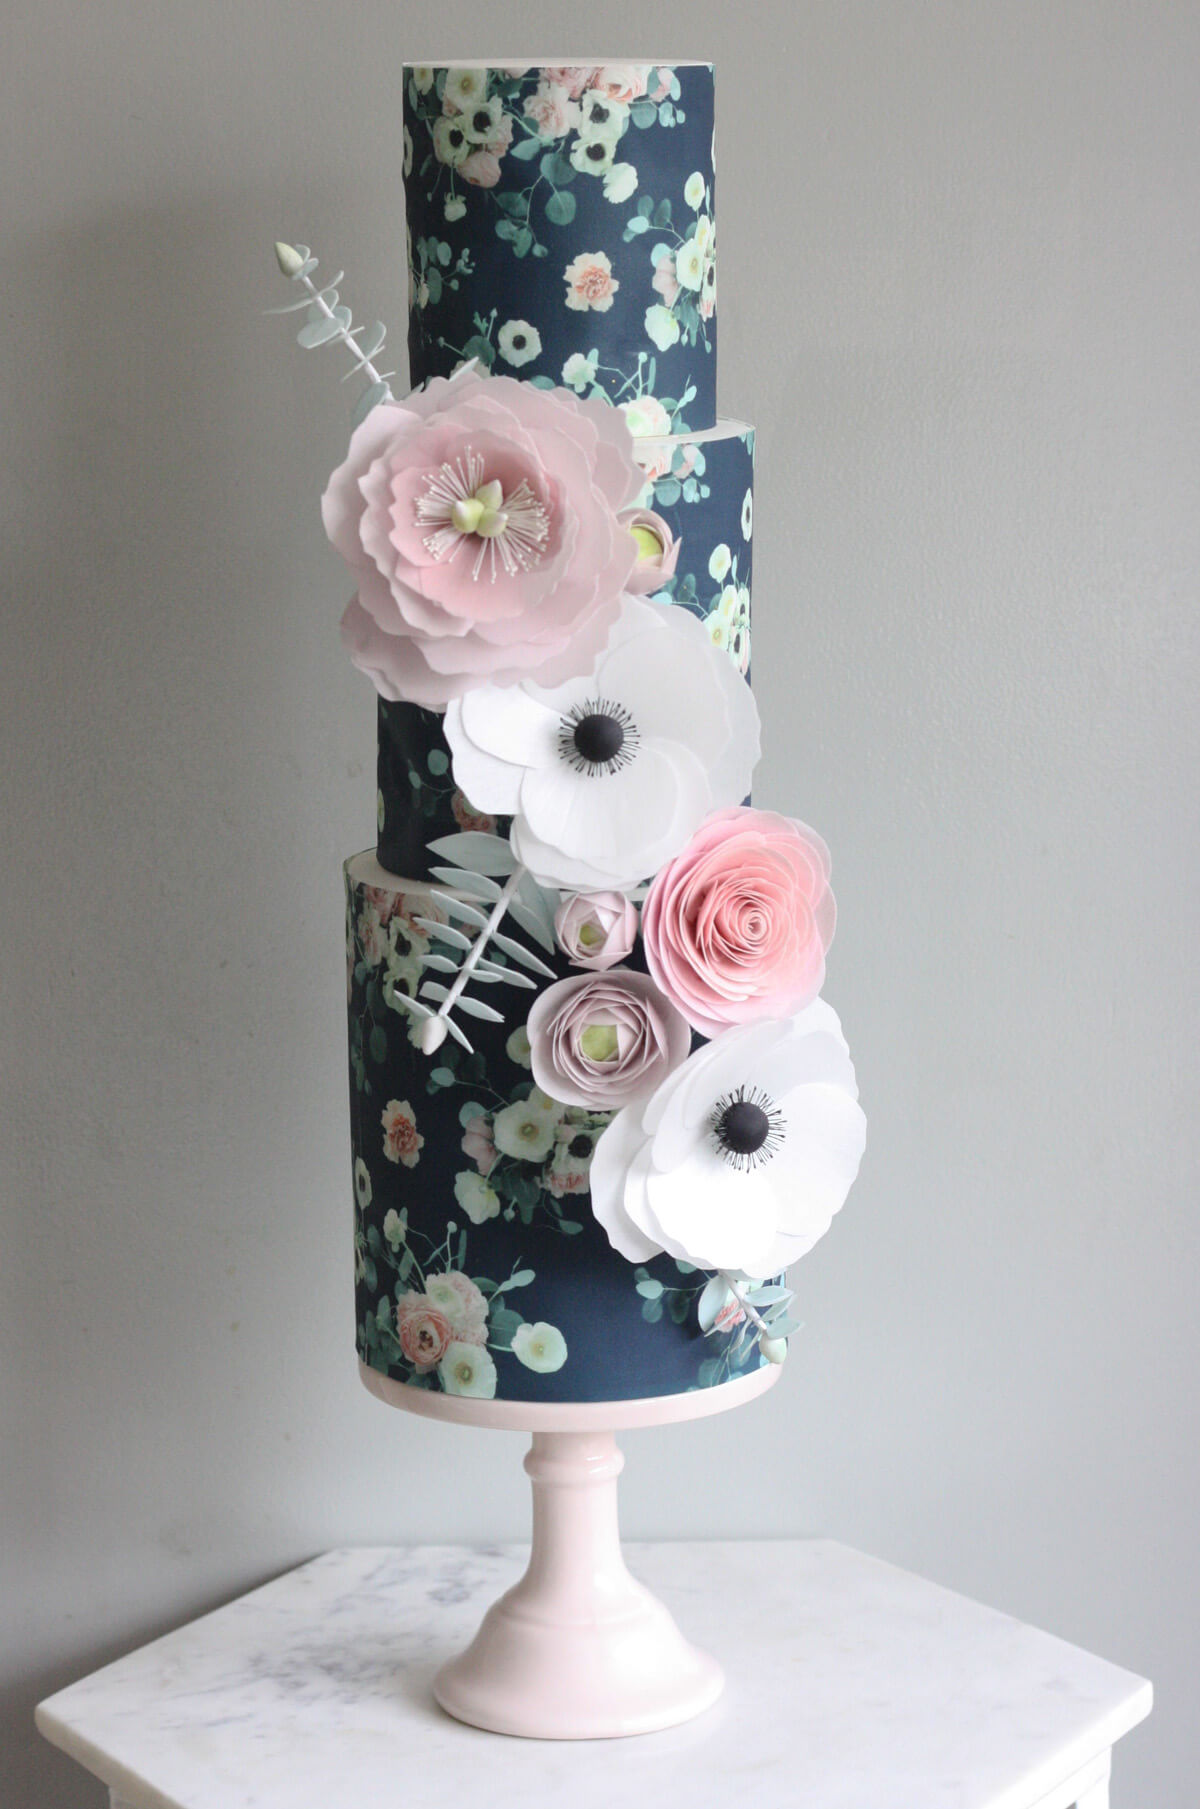 This cake is from Katie at Malarkey Cakes, she is based in North London and loves to travel.  This cake has such a beautiful range of colours which we love! The wafer paper flowers are amazing and such a statement. A simple flower on a beautifully floral background really does make this cake stand out.